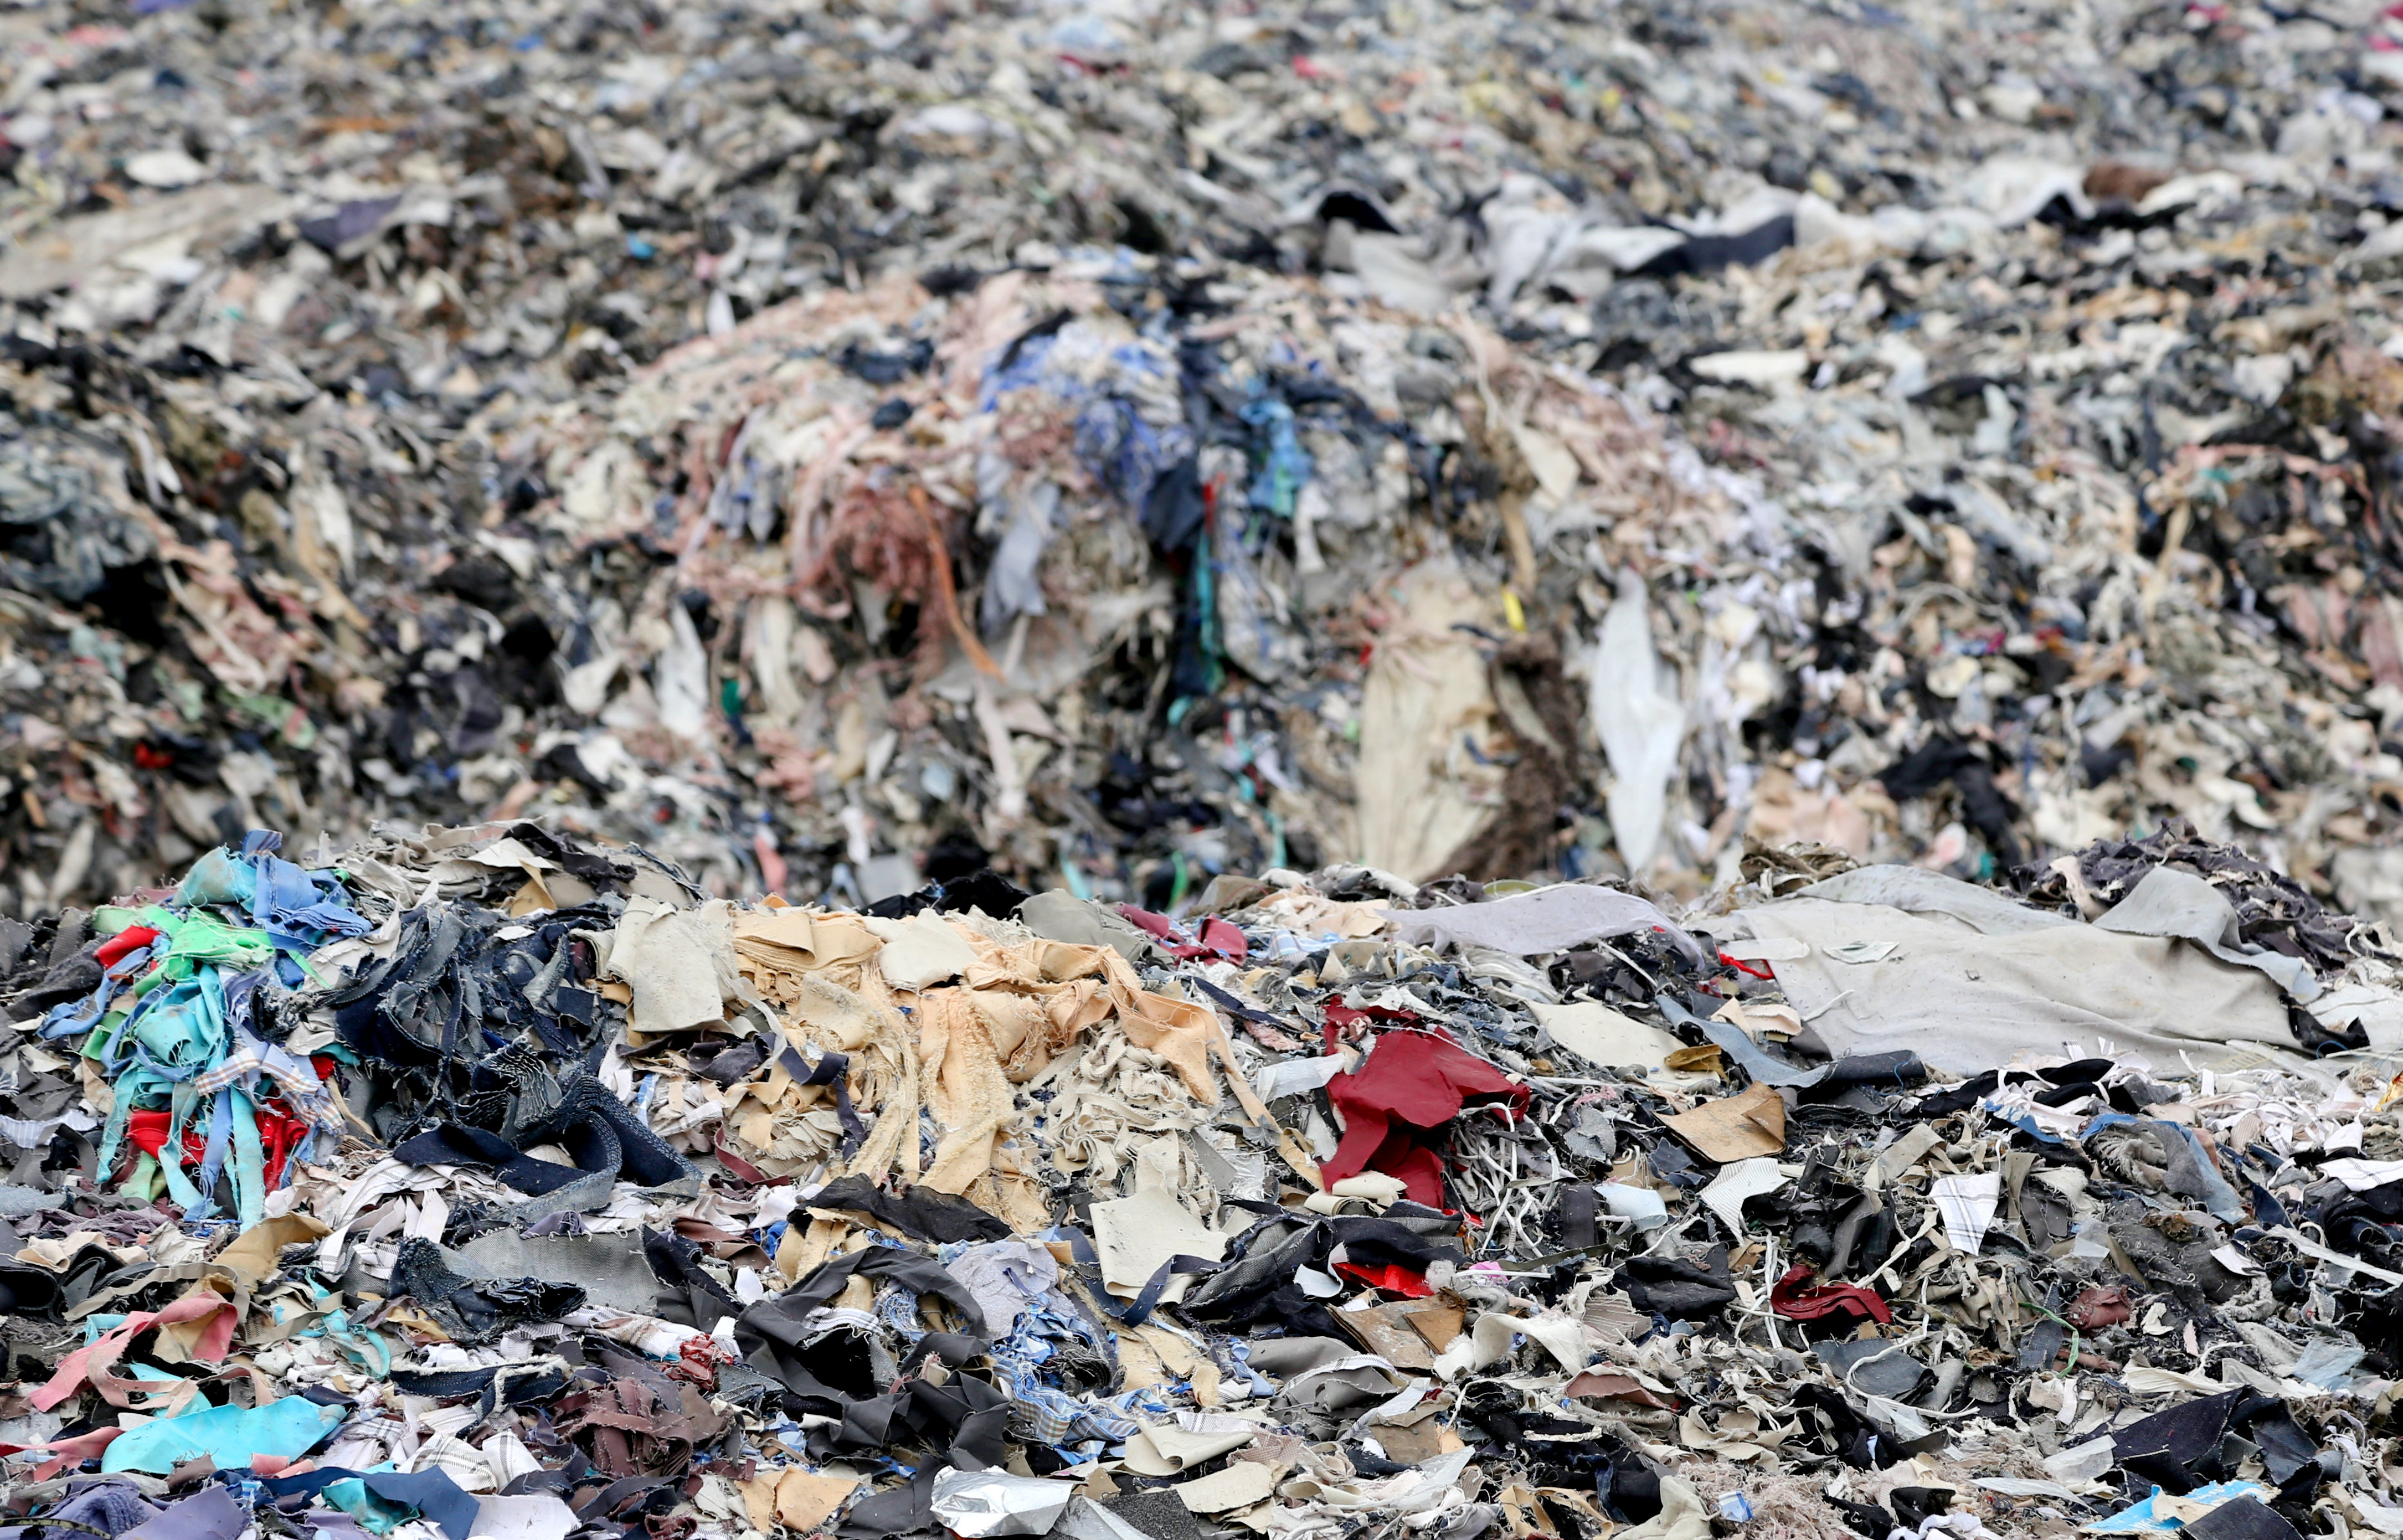 Large pile of clothing and textile waste in landfill